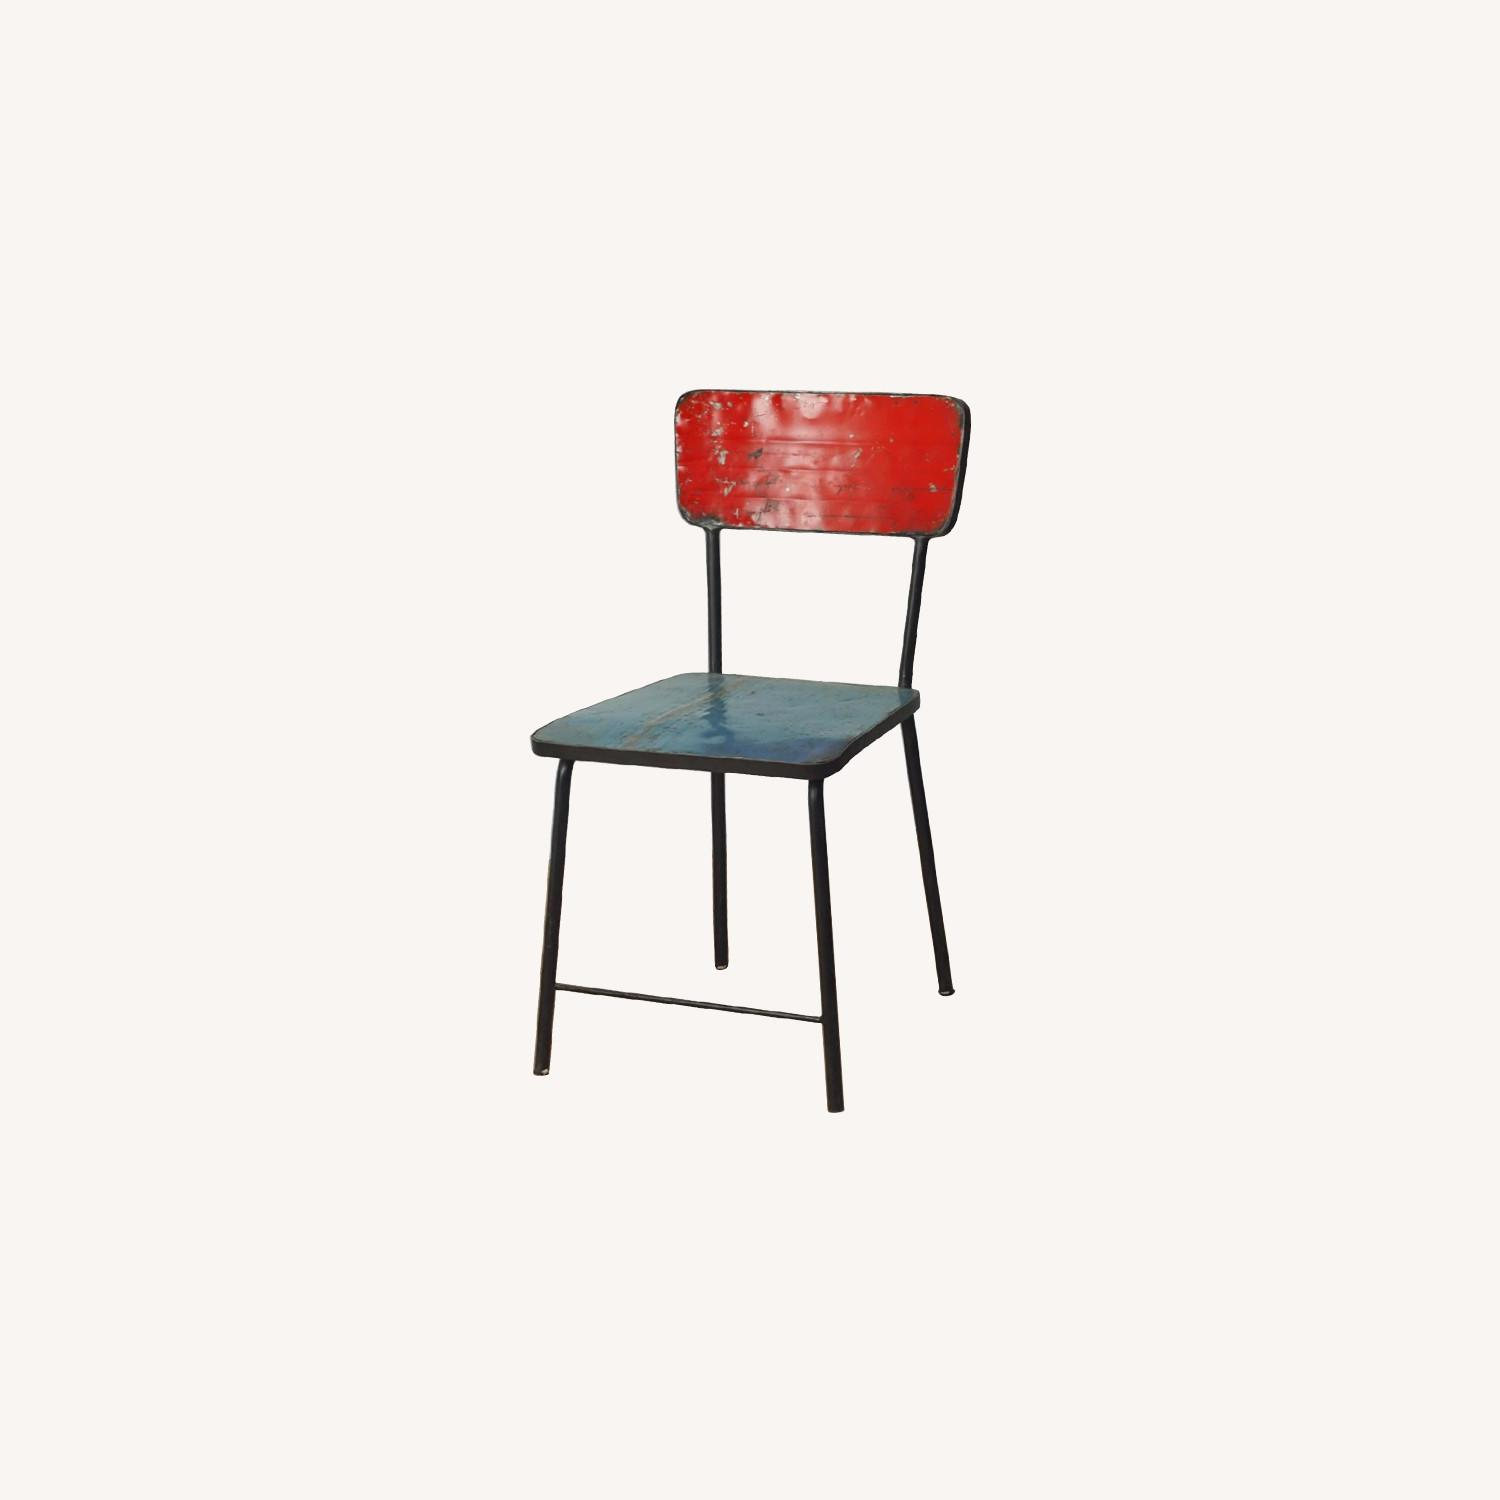 From The Source Pele Recycled Oil Drums Dining Chairs - image-3